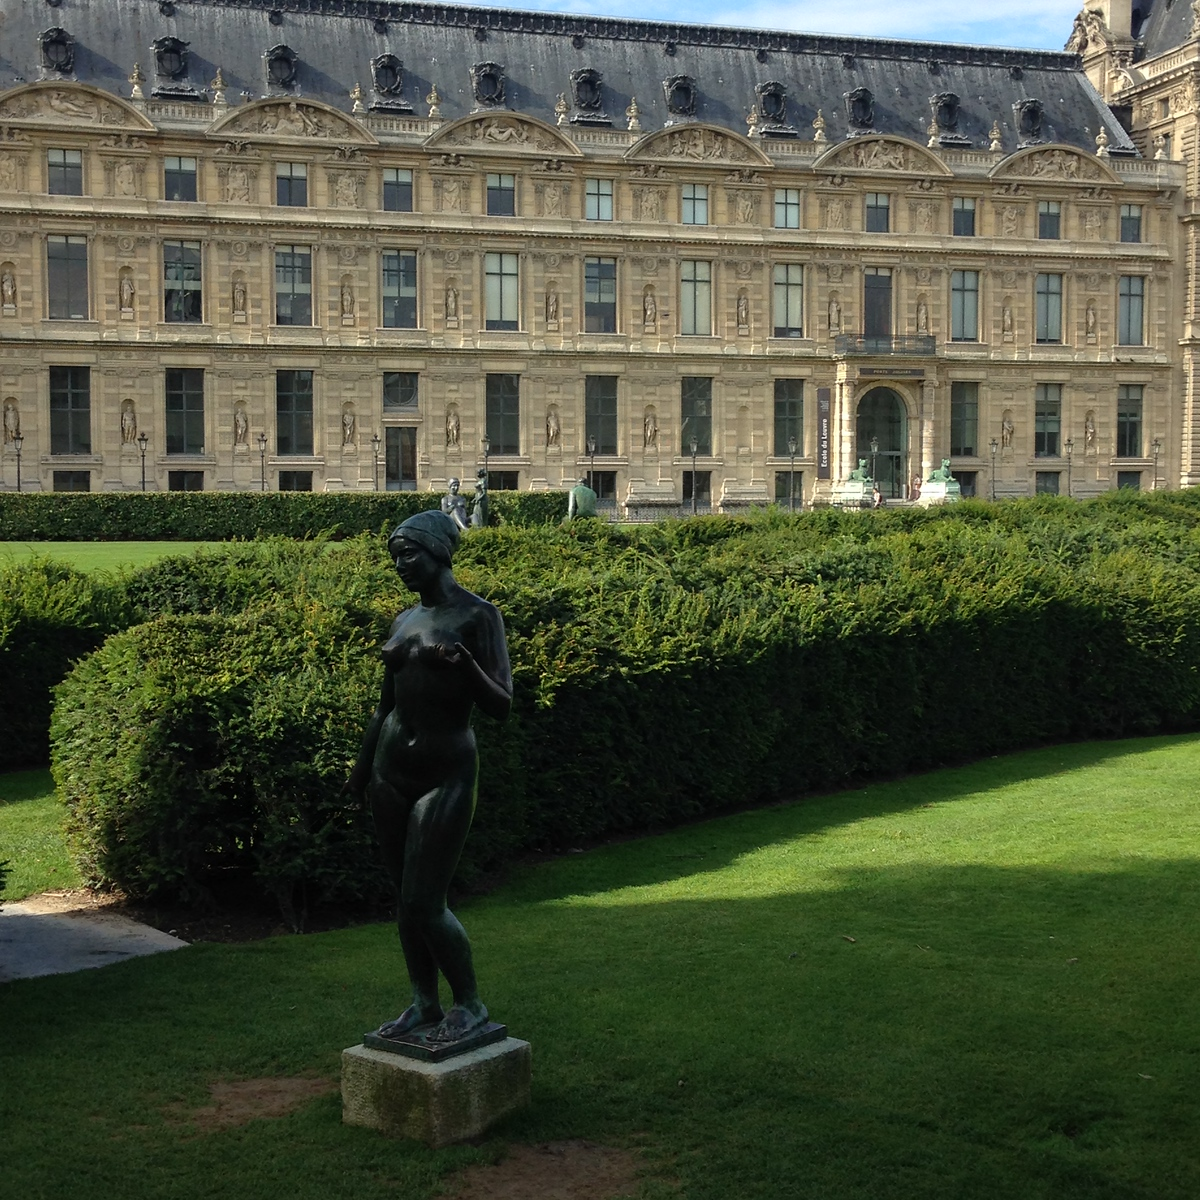 A Statue in the Garden, With the Louvre in the Background